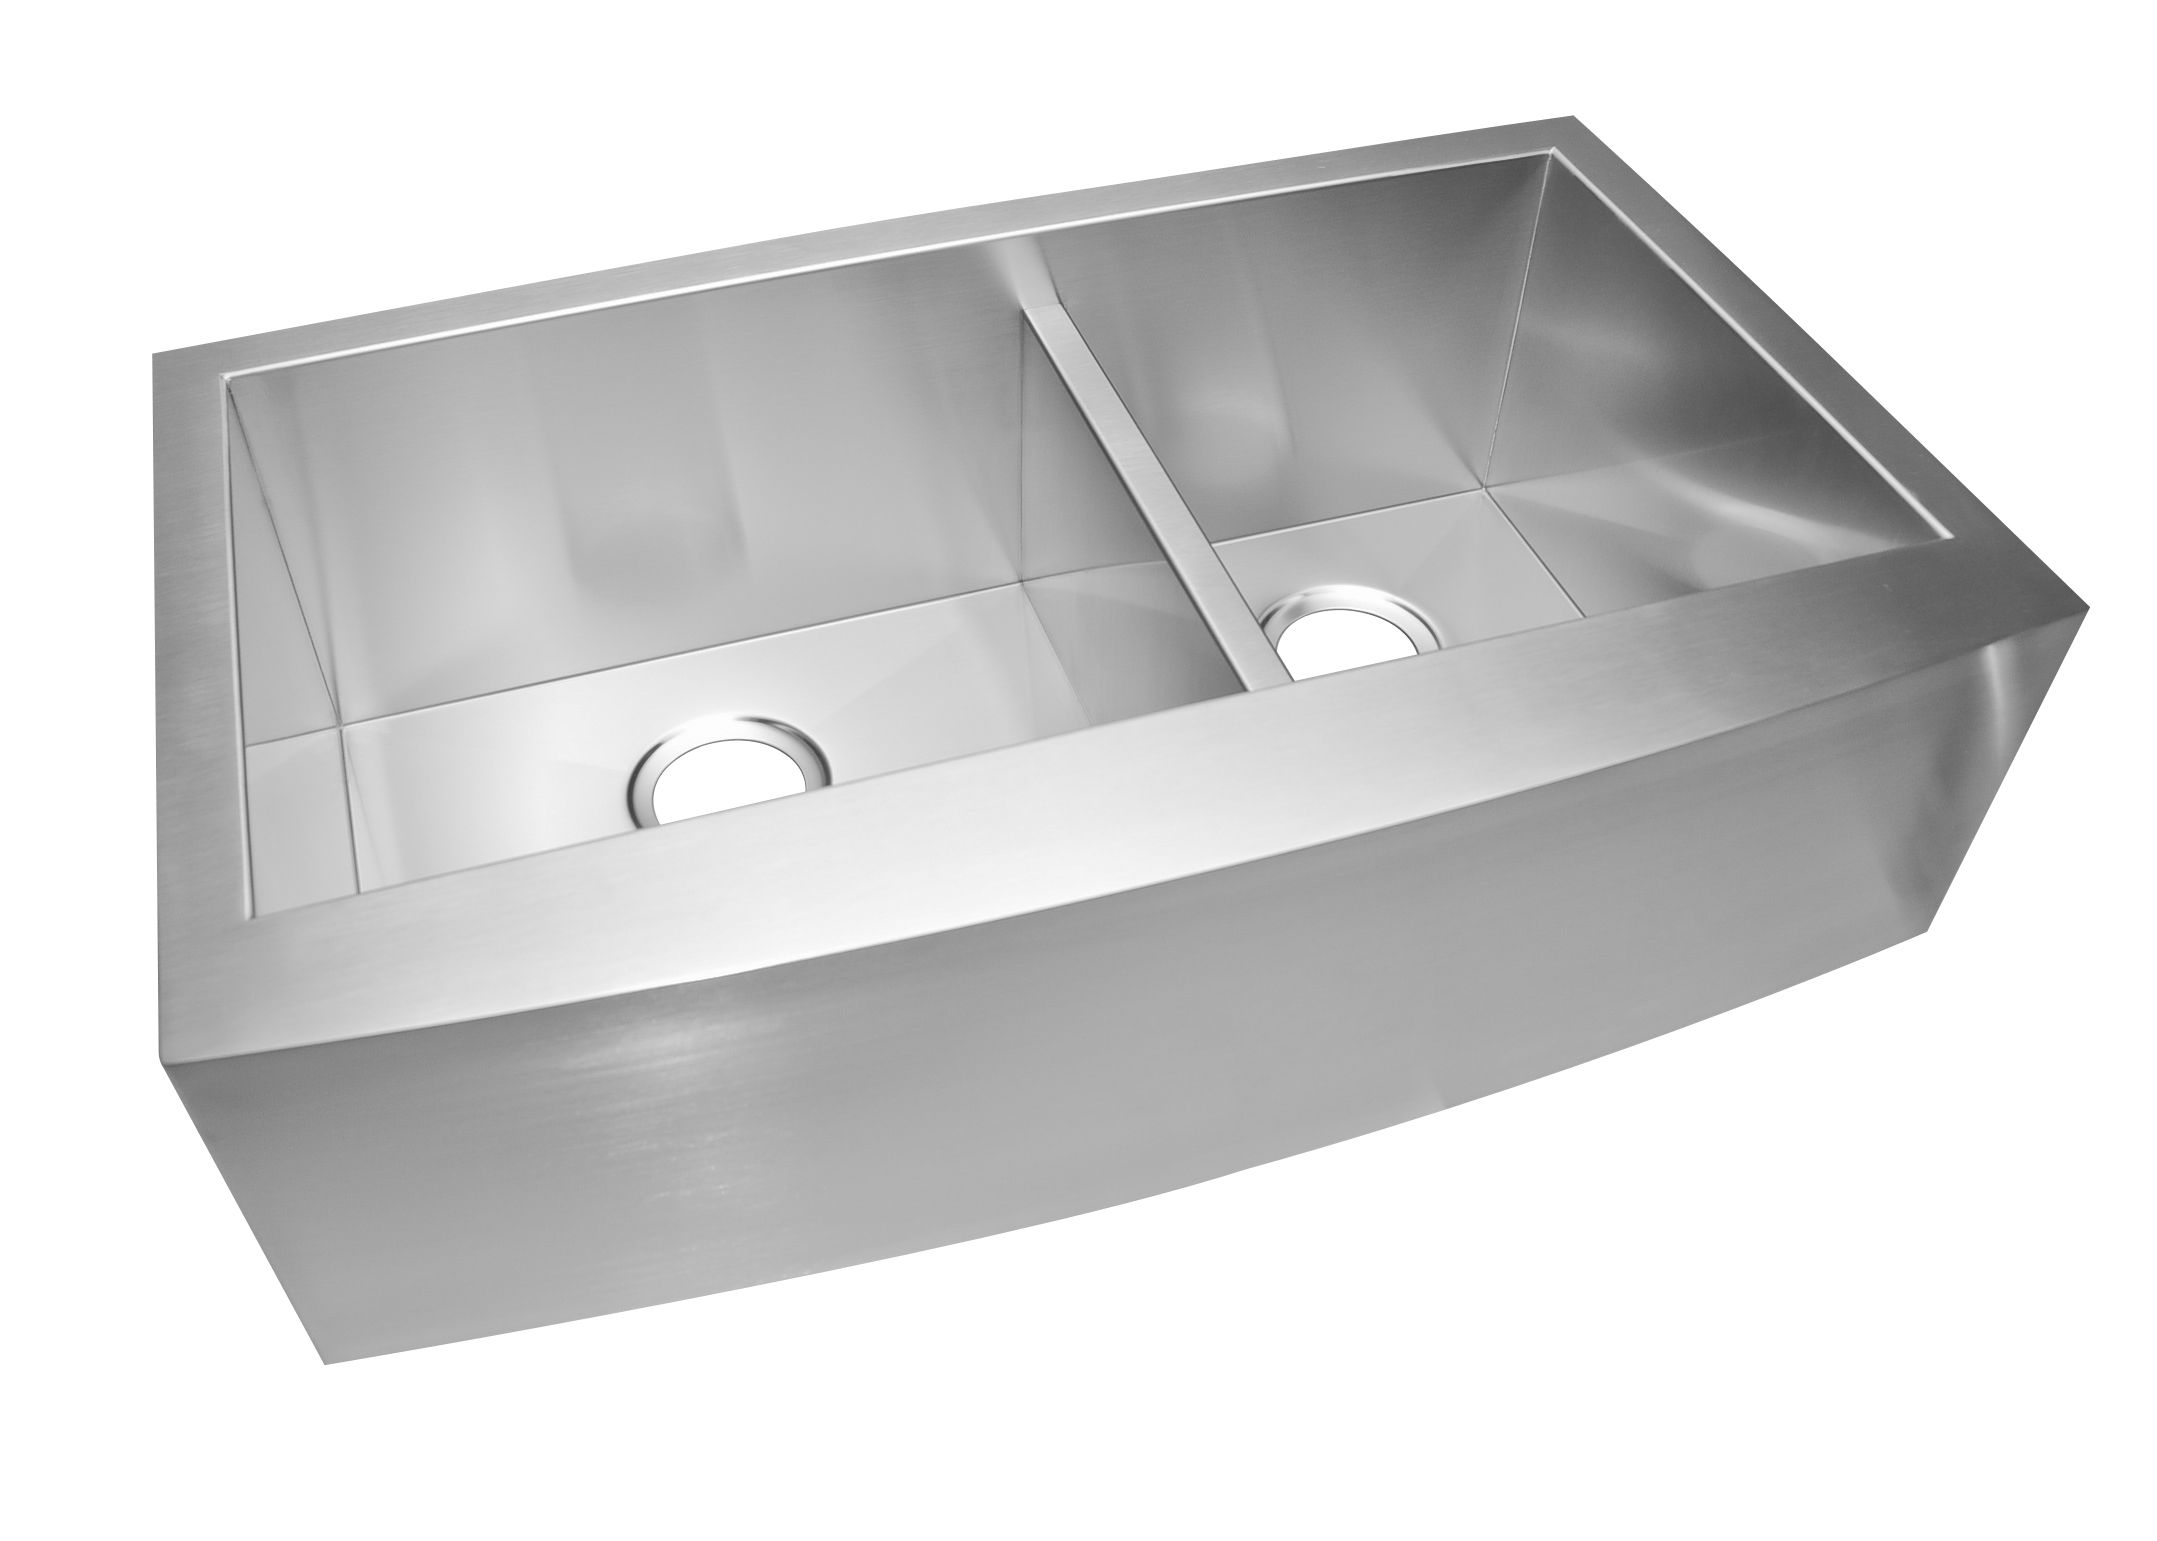 33 stainless steel farmhouse sinkdouble bowl with